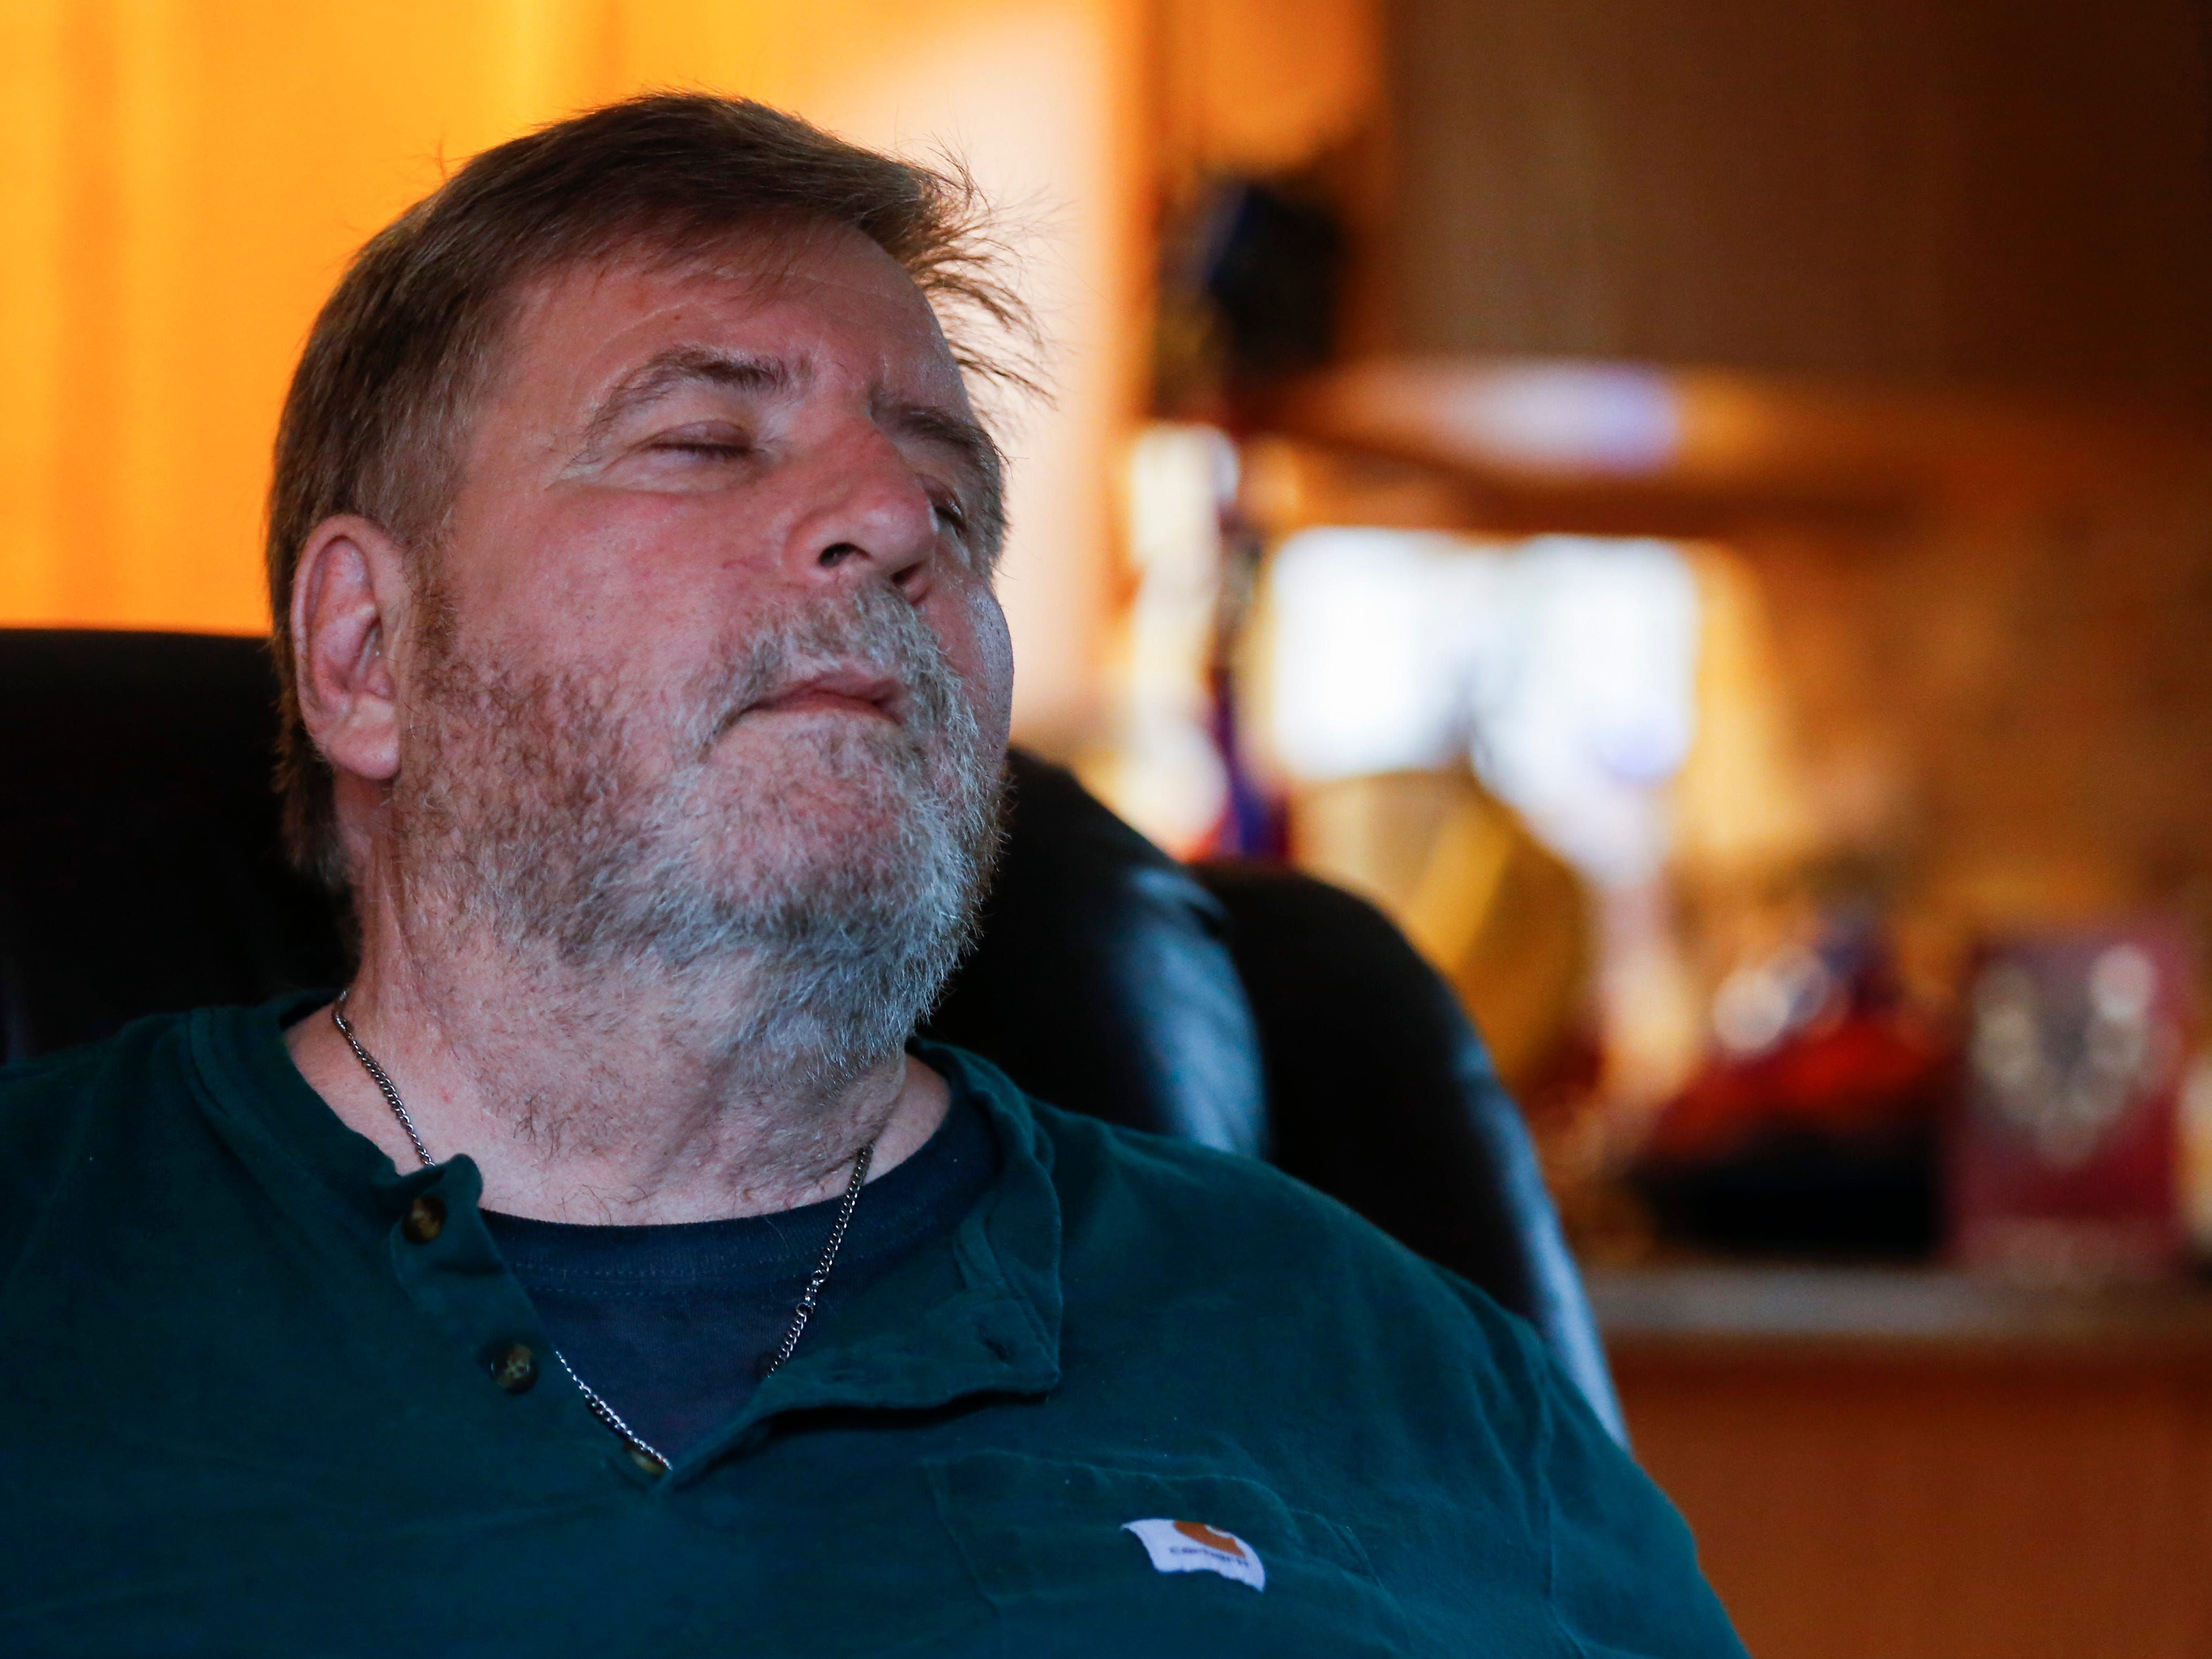 Scott Morgan closes his eyes in pain at his home in Branson West on Wednesday, Nov. 14, 2018.